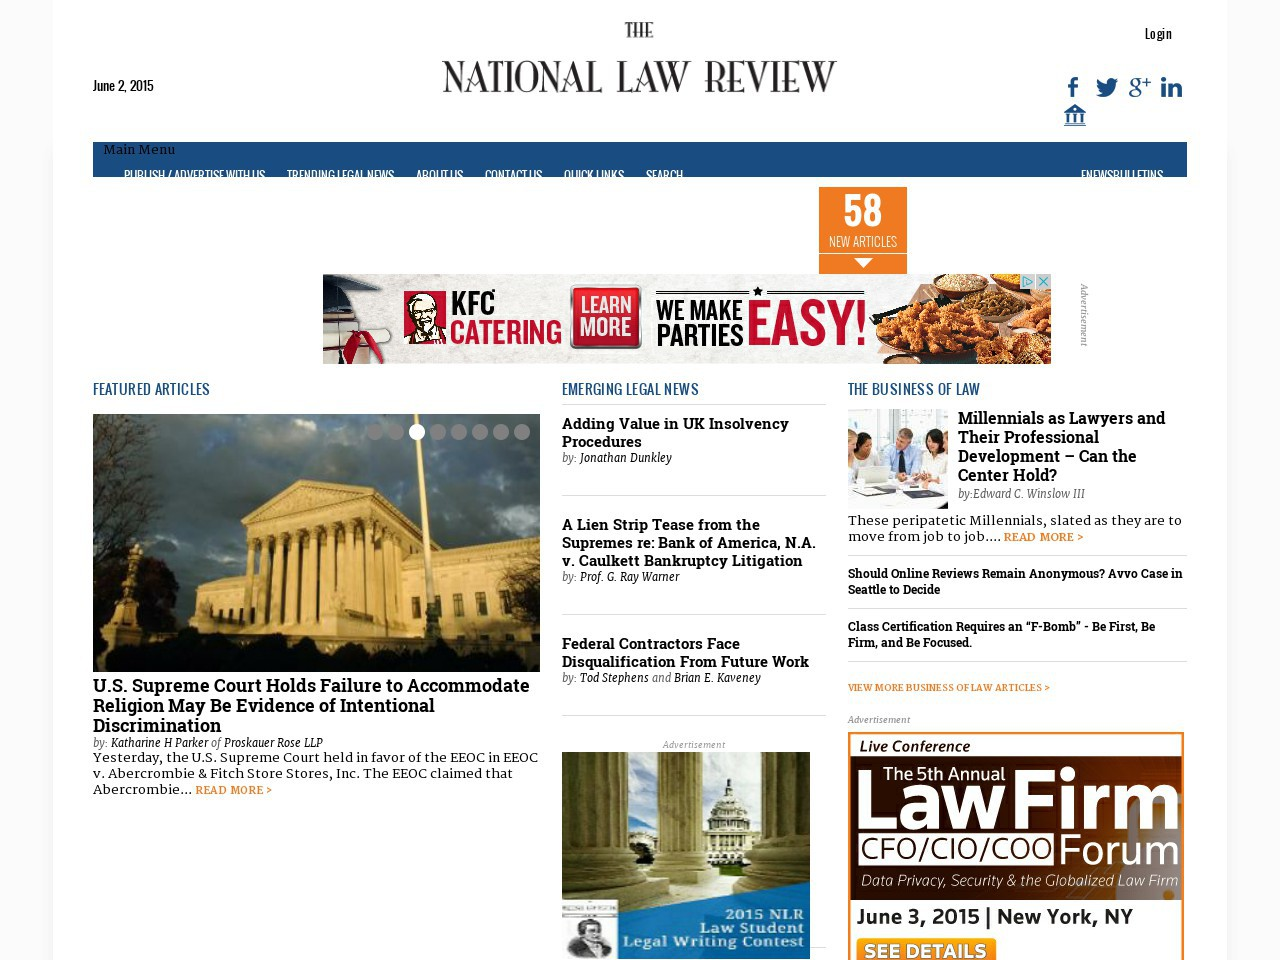 http://www.natlawreview.com/article/telling-harasser-to-stop-protected-activity-under-title-vii